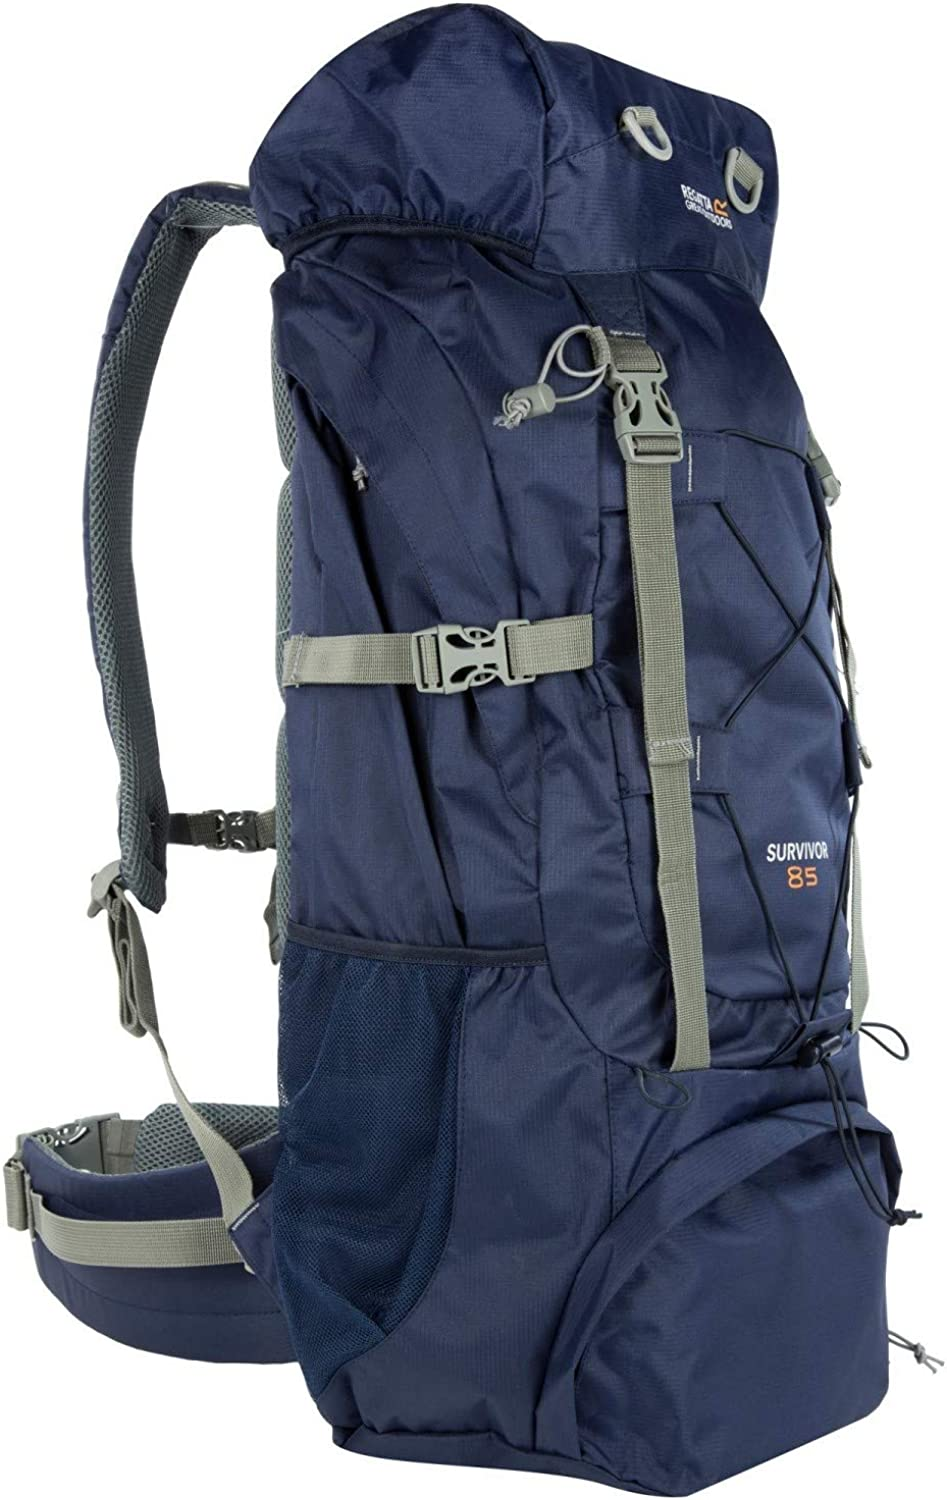 Regatta Great Outdoors Survivor III 85 Liter Rucksack (Einheitsgre) (Marineblau)